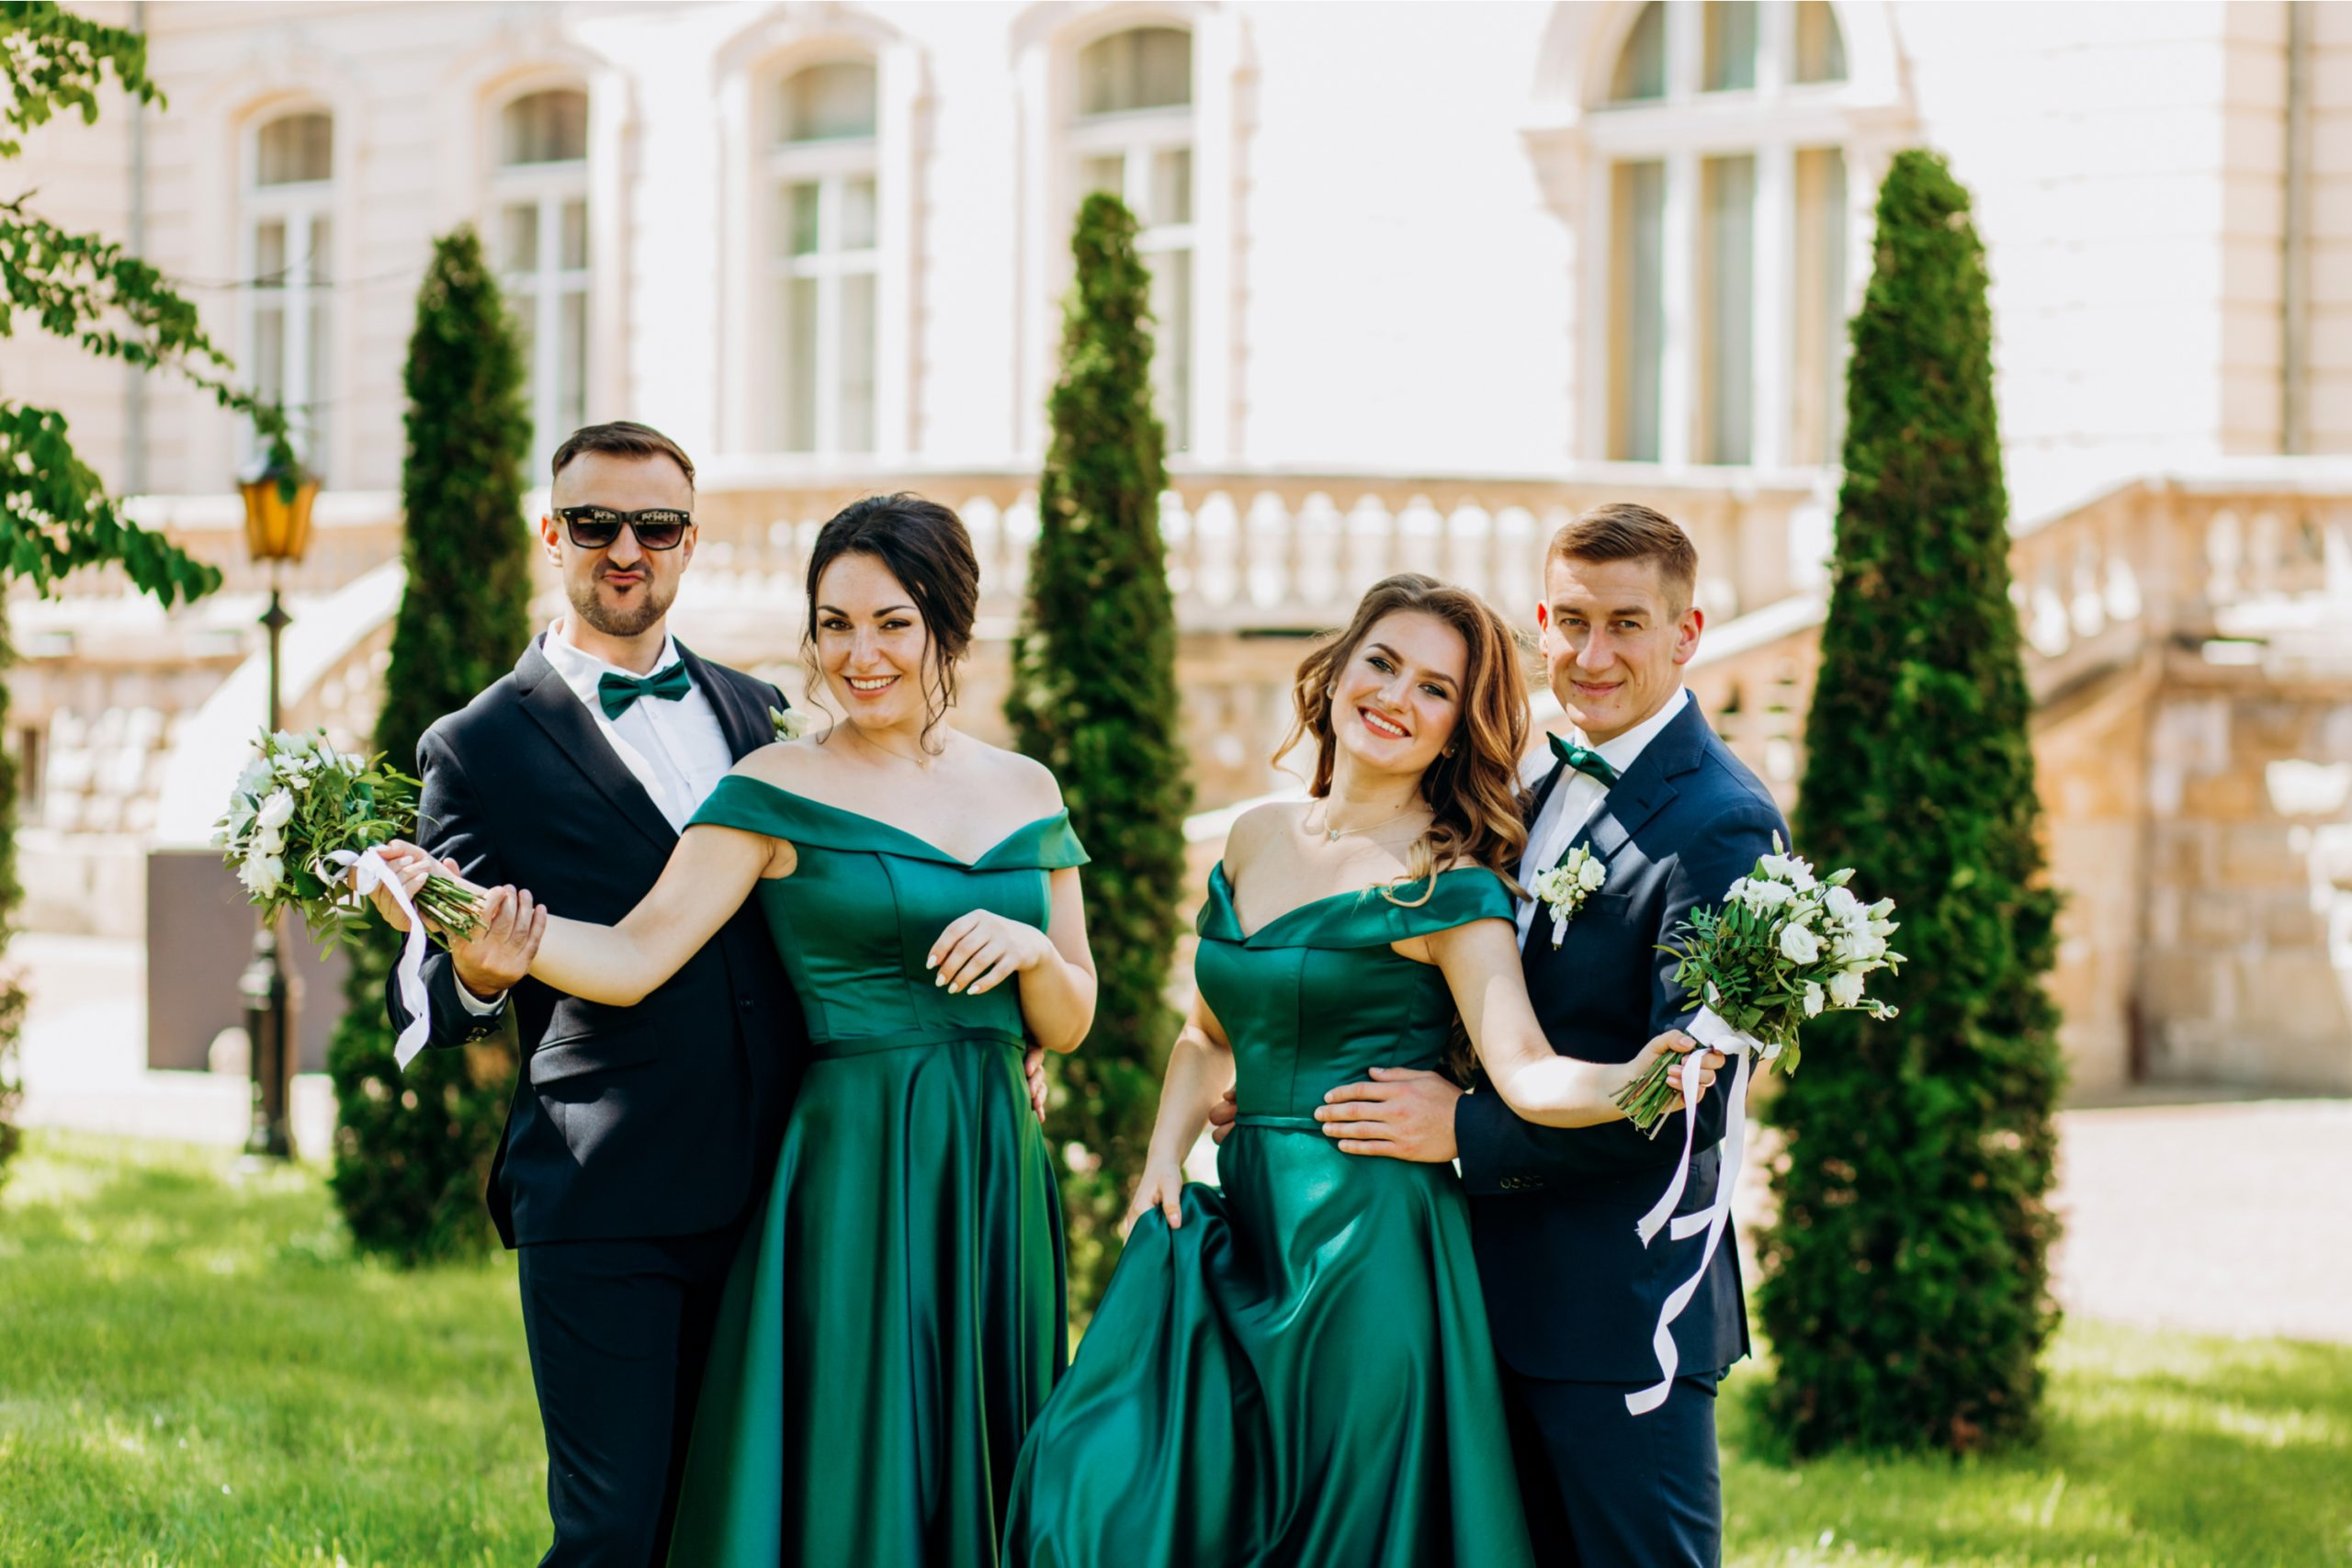 Emerald Green is one of my favorite colors for wedding color schemes because it is truly one of the most elegant colors out there.  And the best thing about it is that it looks positively gorgeous in almost any season or setting. Even bridesmaid dresses are gorgeous in emerald green.